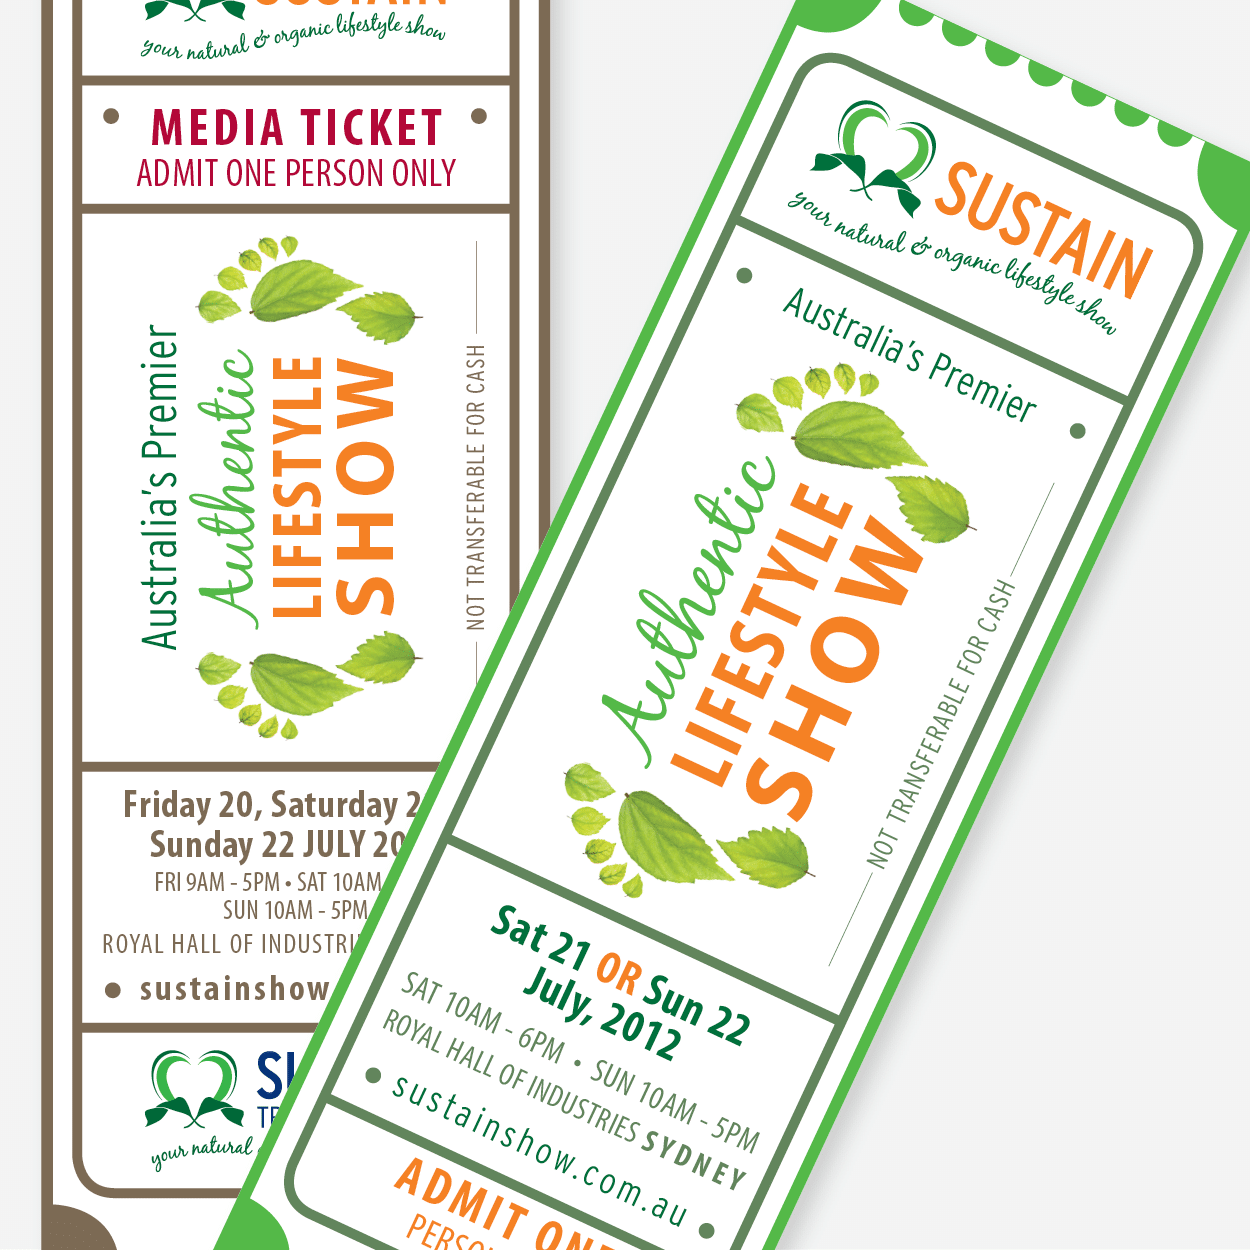 Event Collateral: Sustain Expo